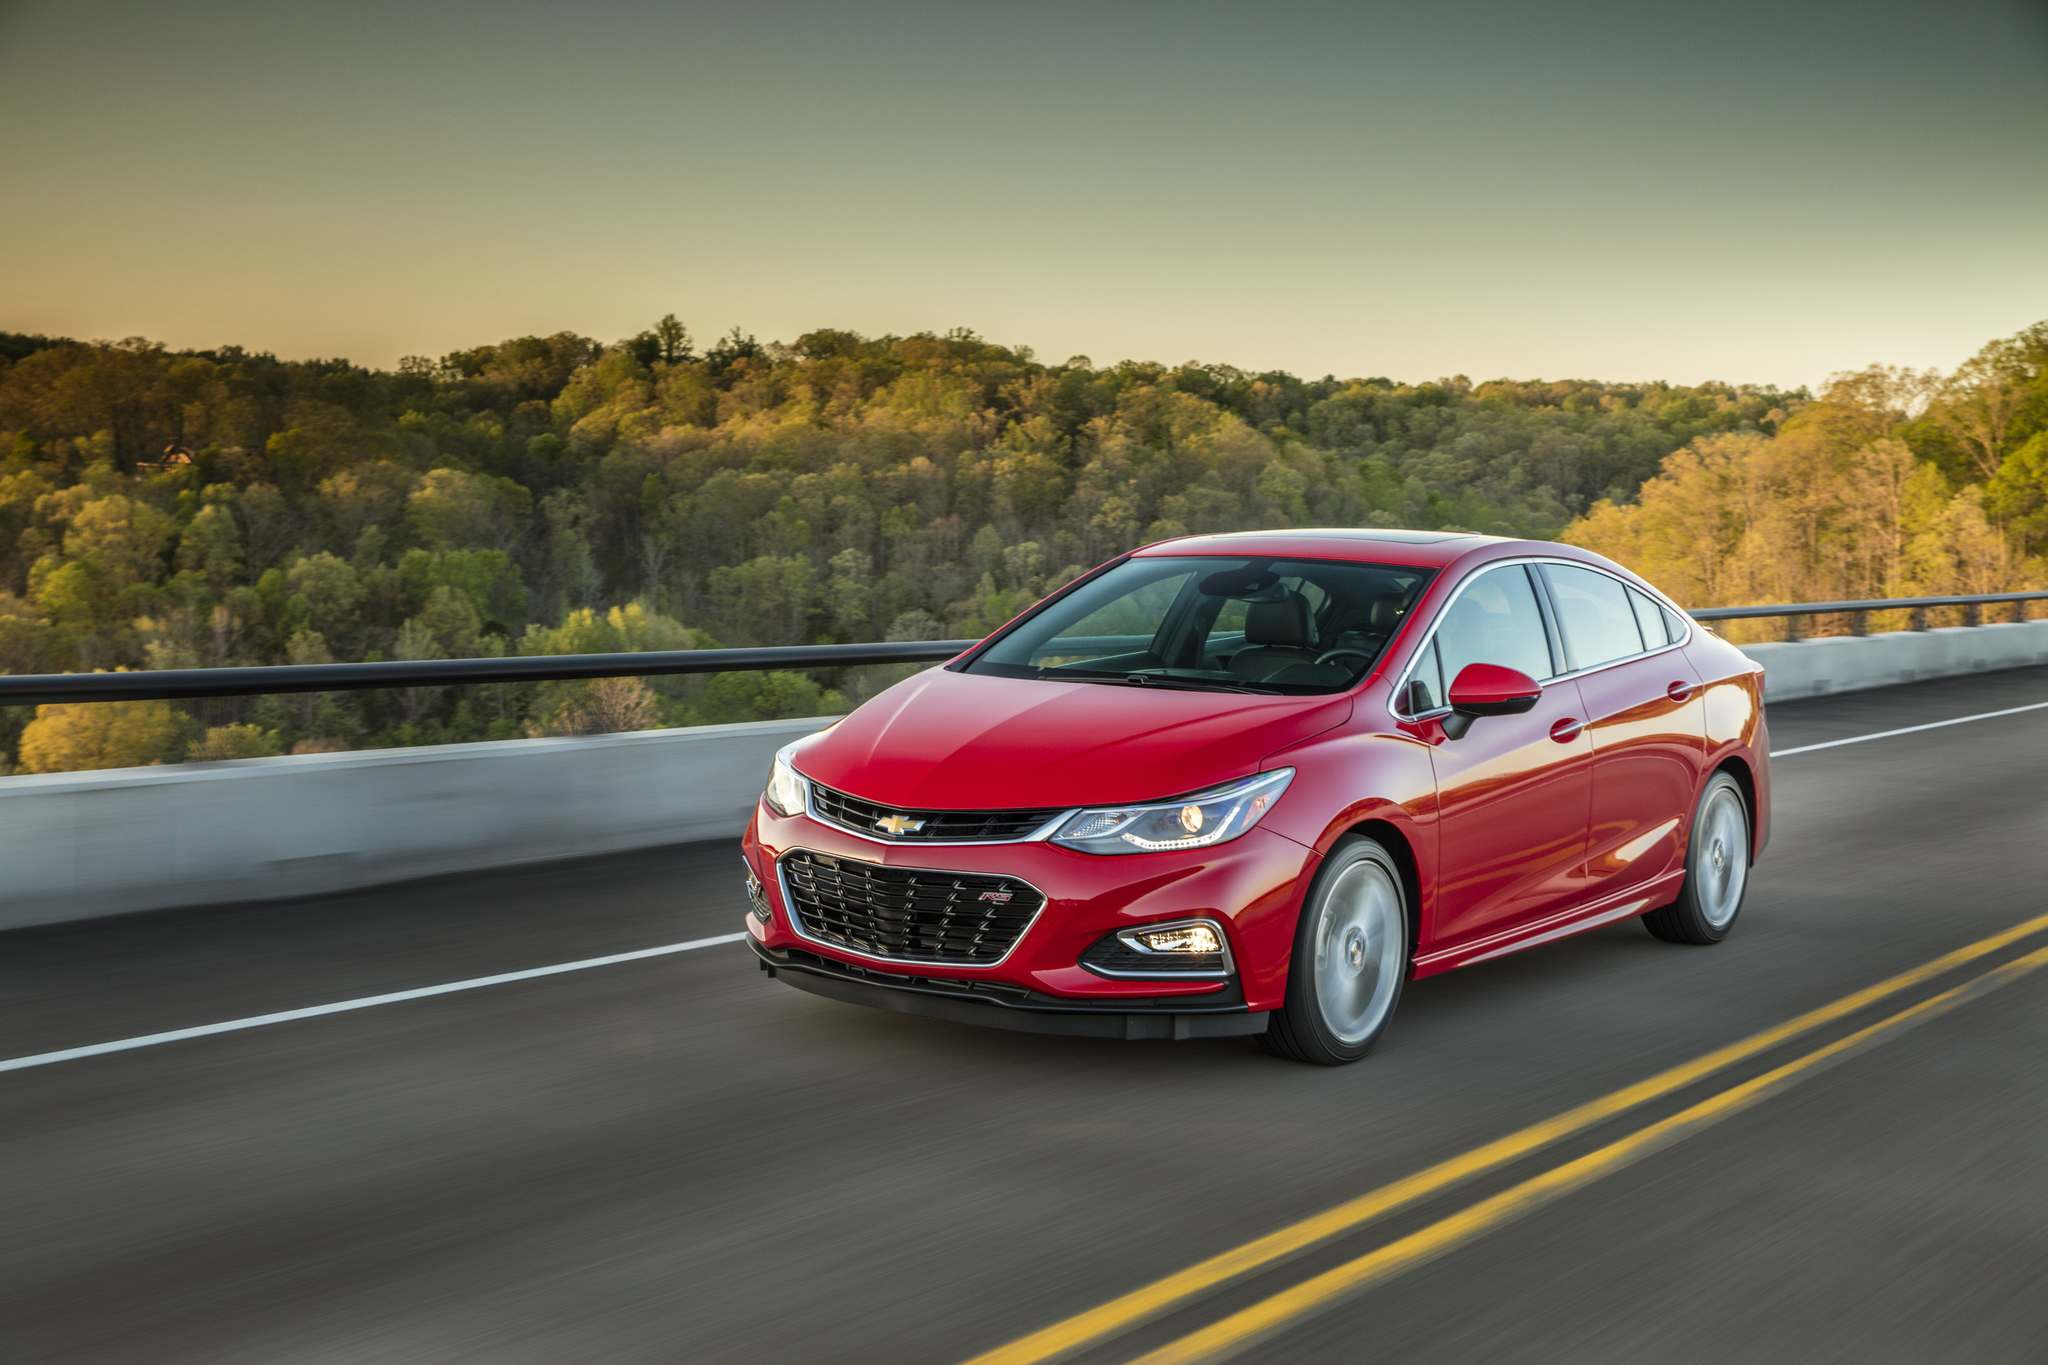 Handout / ChevroletThe newly redesigned Chevrolet Cruze eschews four-door plainness for a similar swoopy, coupe-like profile to the Honda Civic, and this isn't a bad thing